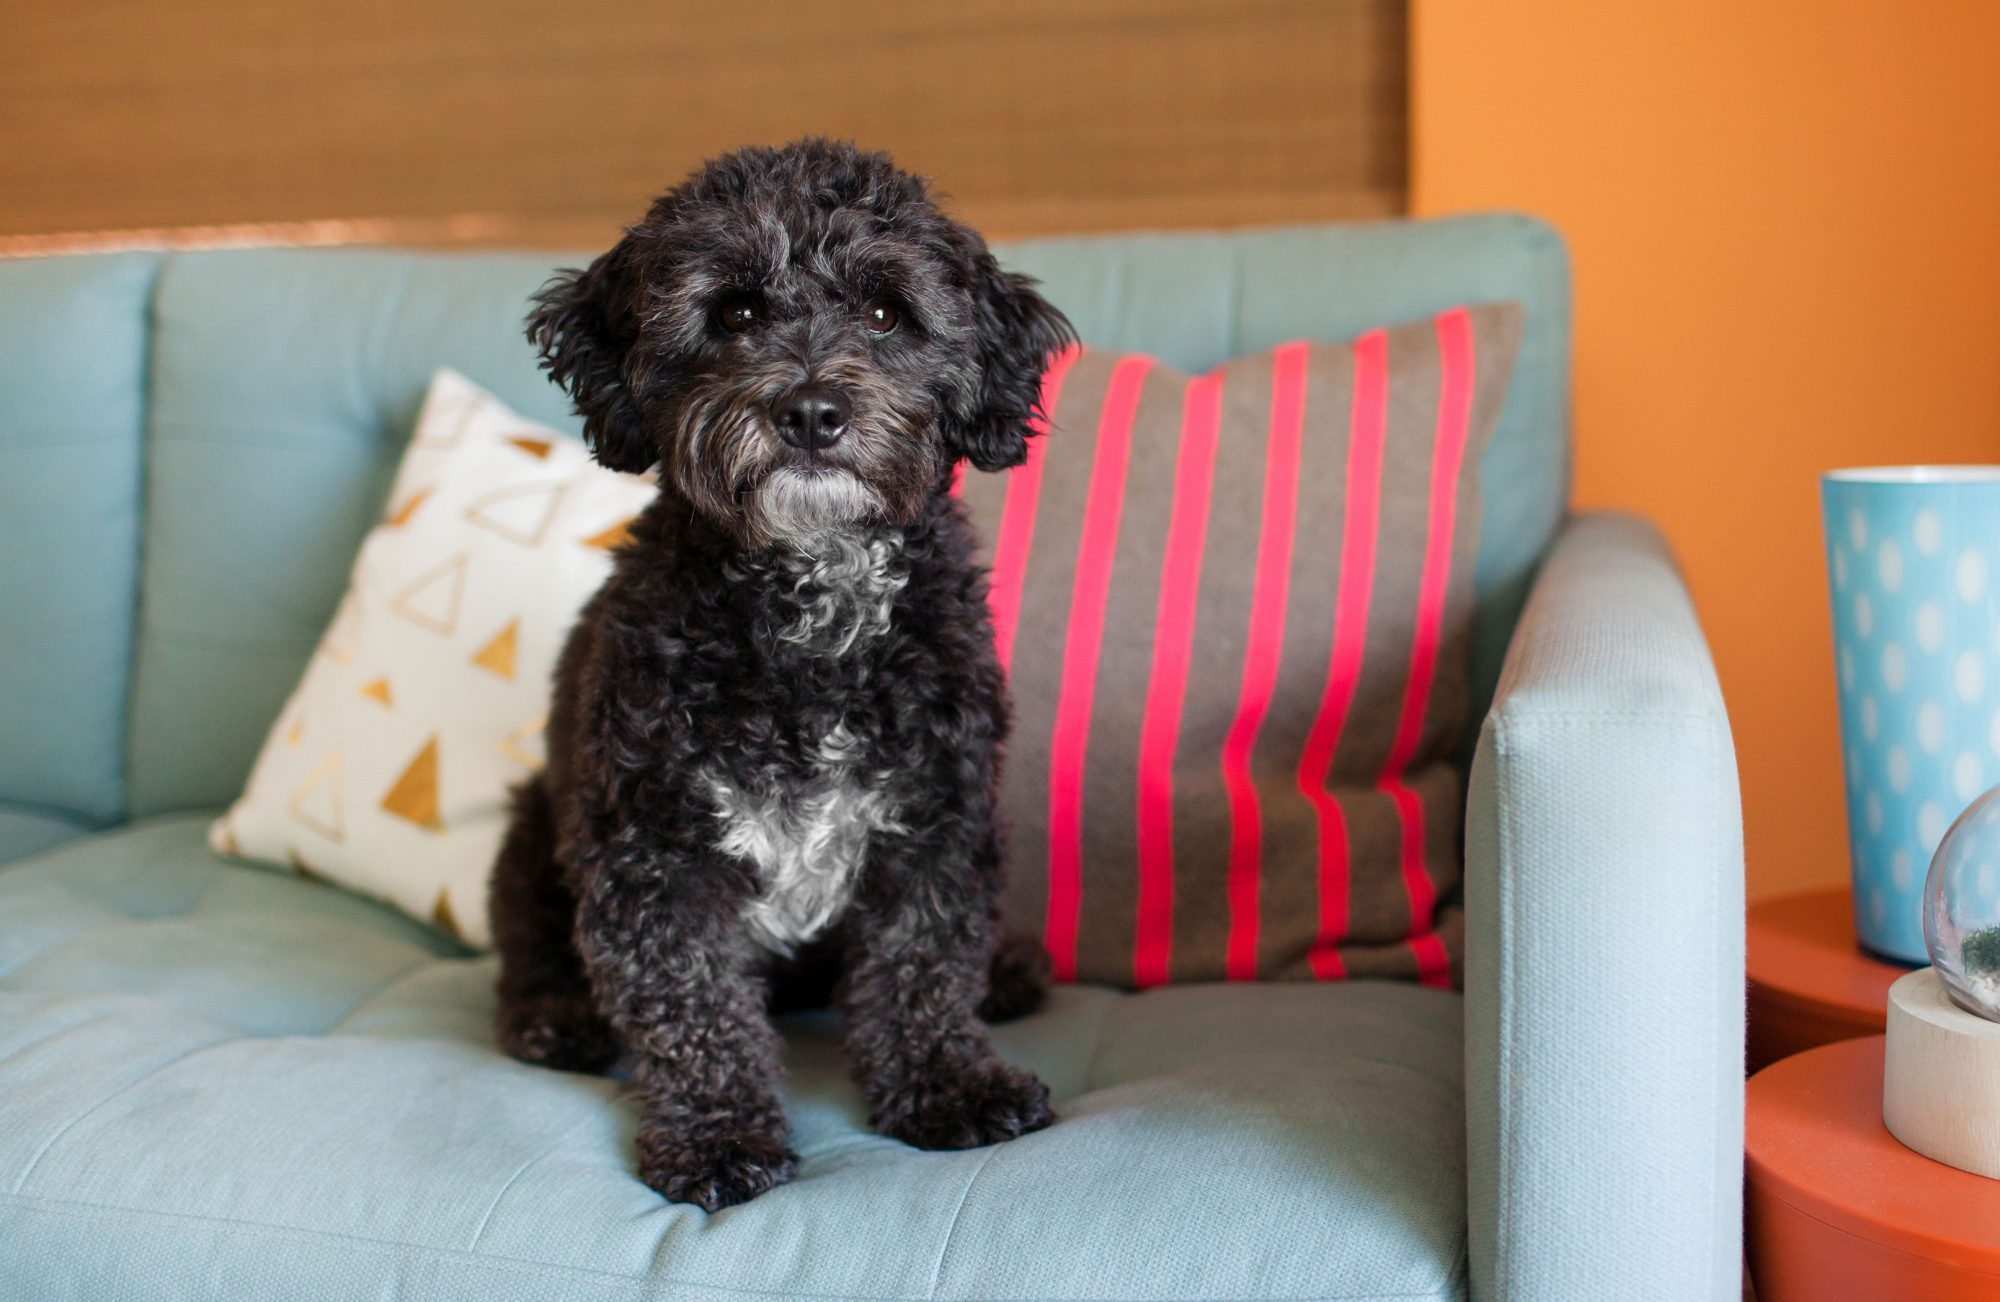 black curly-haired puppy sitting on a blue sofa